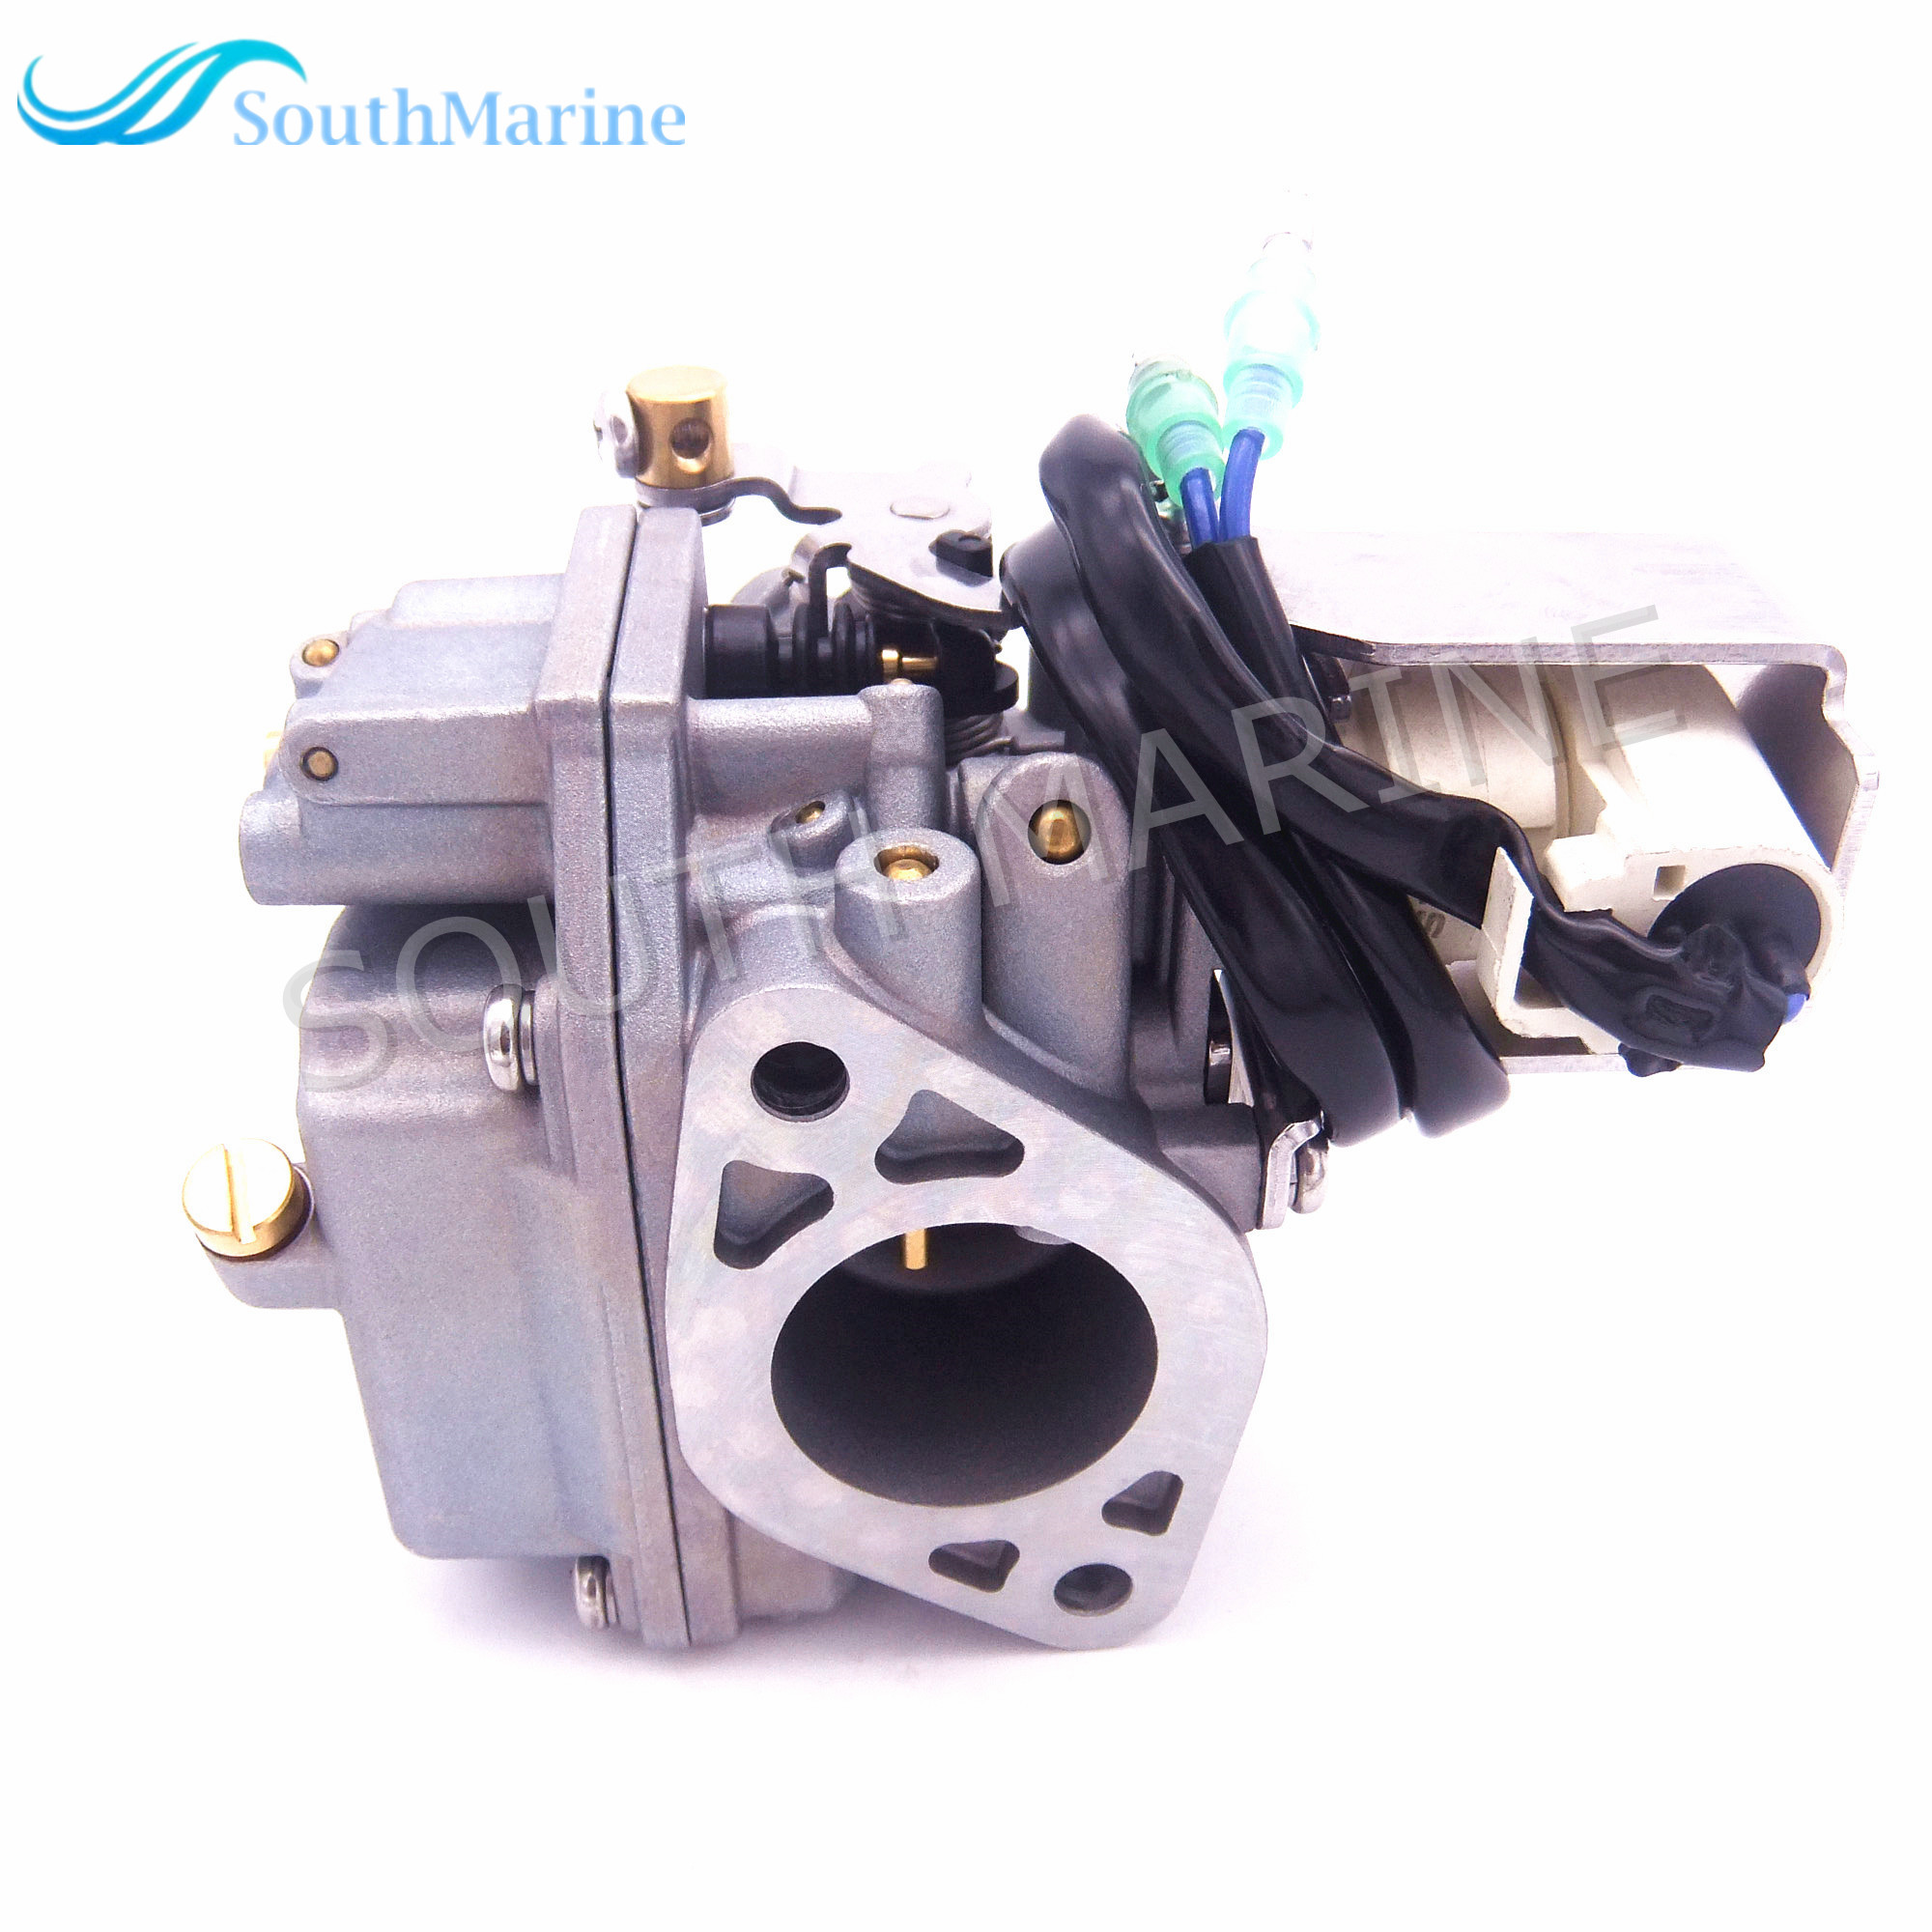 Outboard Engine Carburetor Assy 6AH-14301-00 6AH-14301-01 for Yamaha 4-stroke F20 Boat Motor Free Shipping 66m 14301 11 66m 14301 00 carburetor assy for yamaha 4 stroke 15hp f15 outboard motors